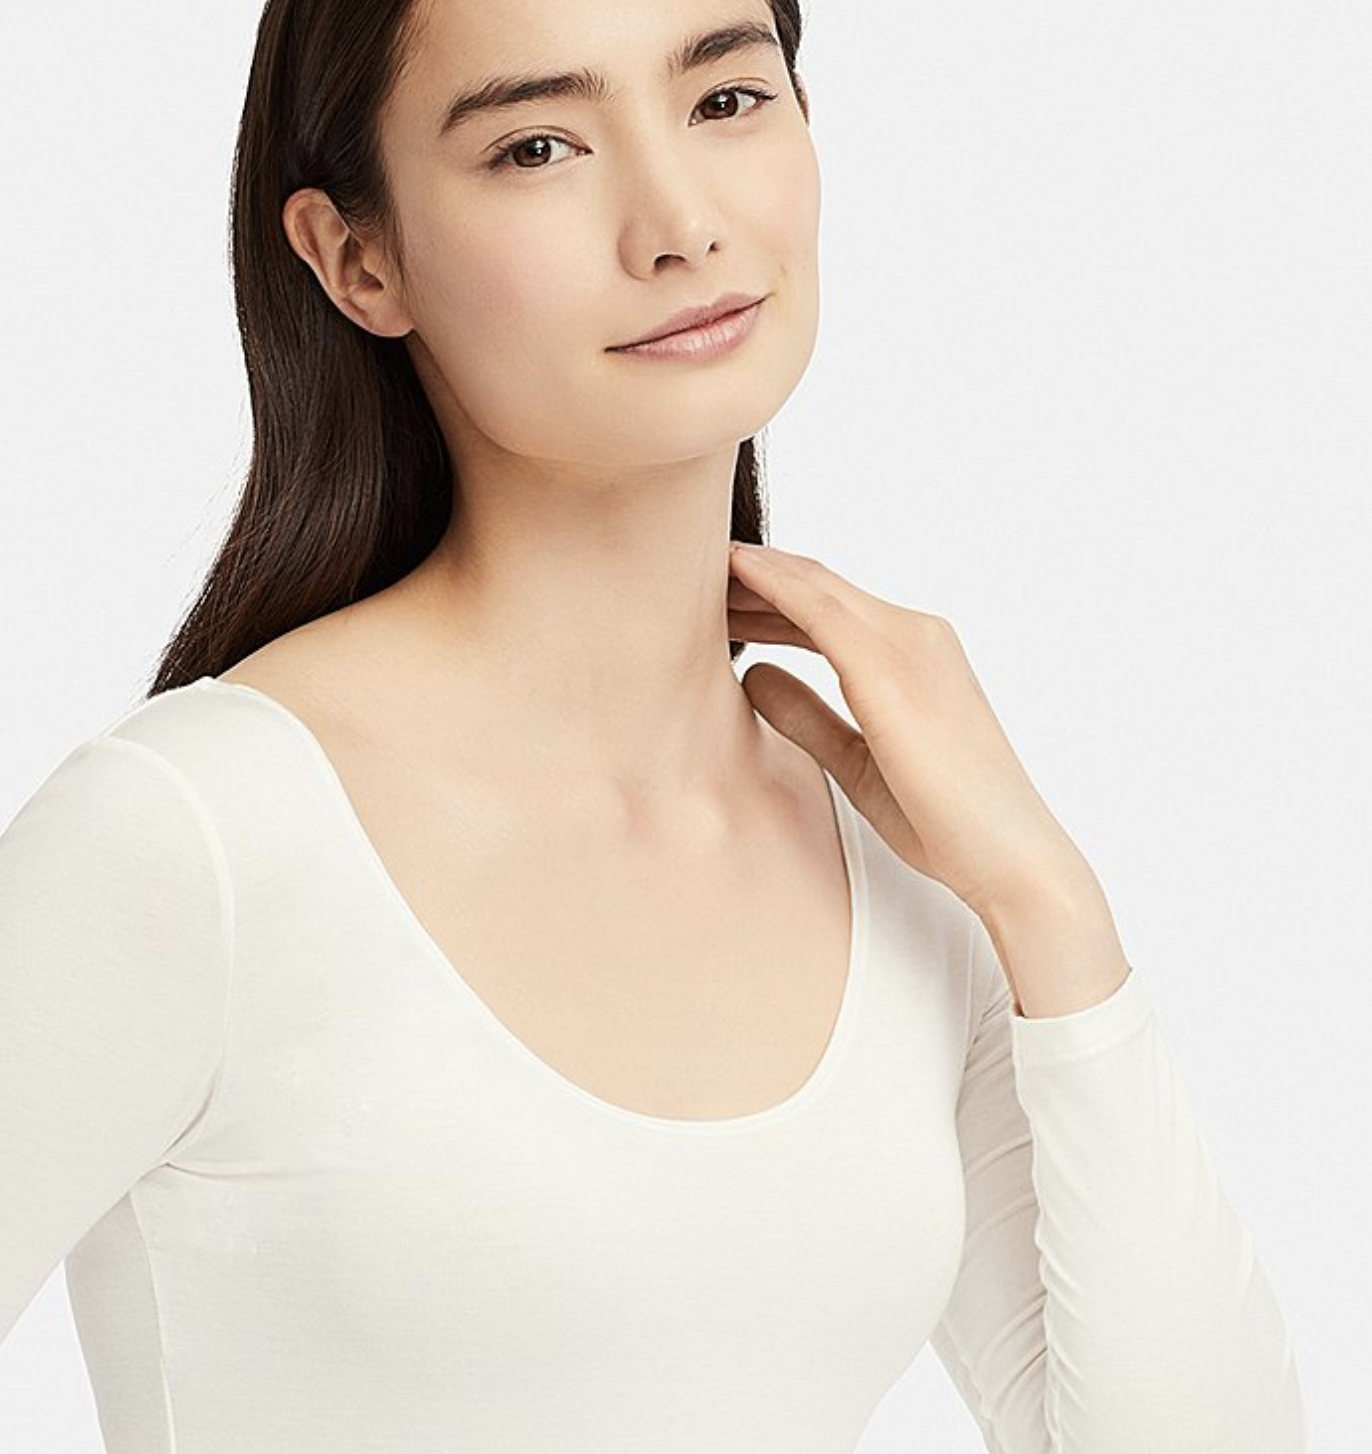 uniqlo thermal layer lizzie edwards image consultant london